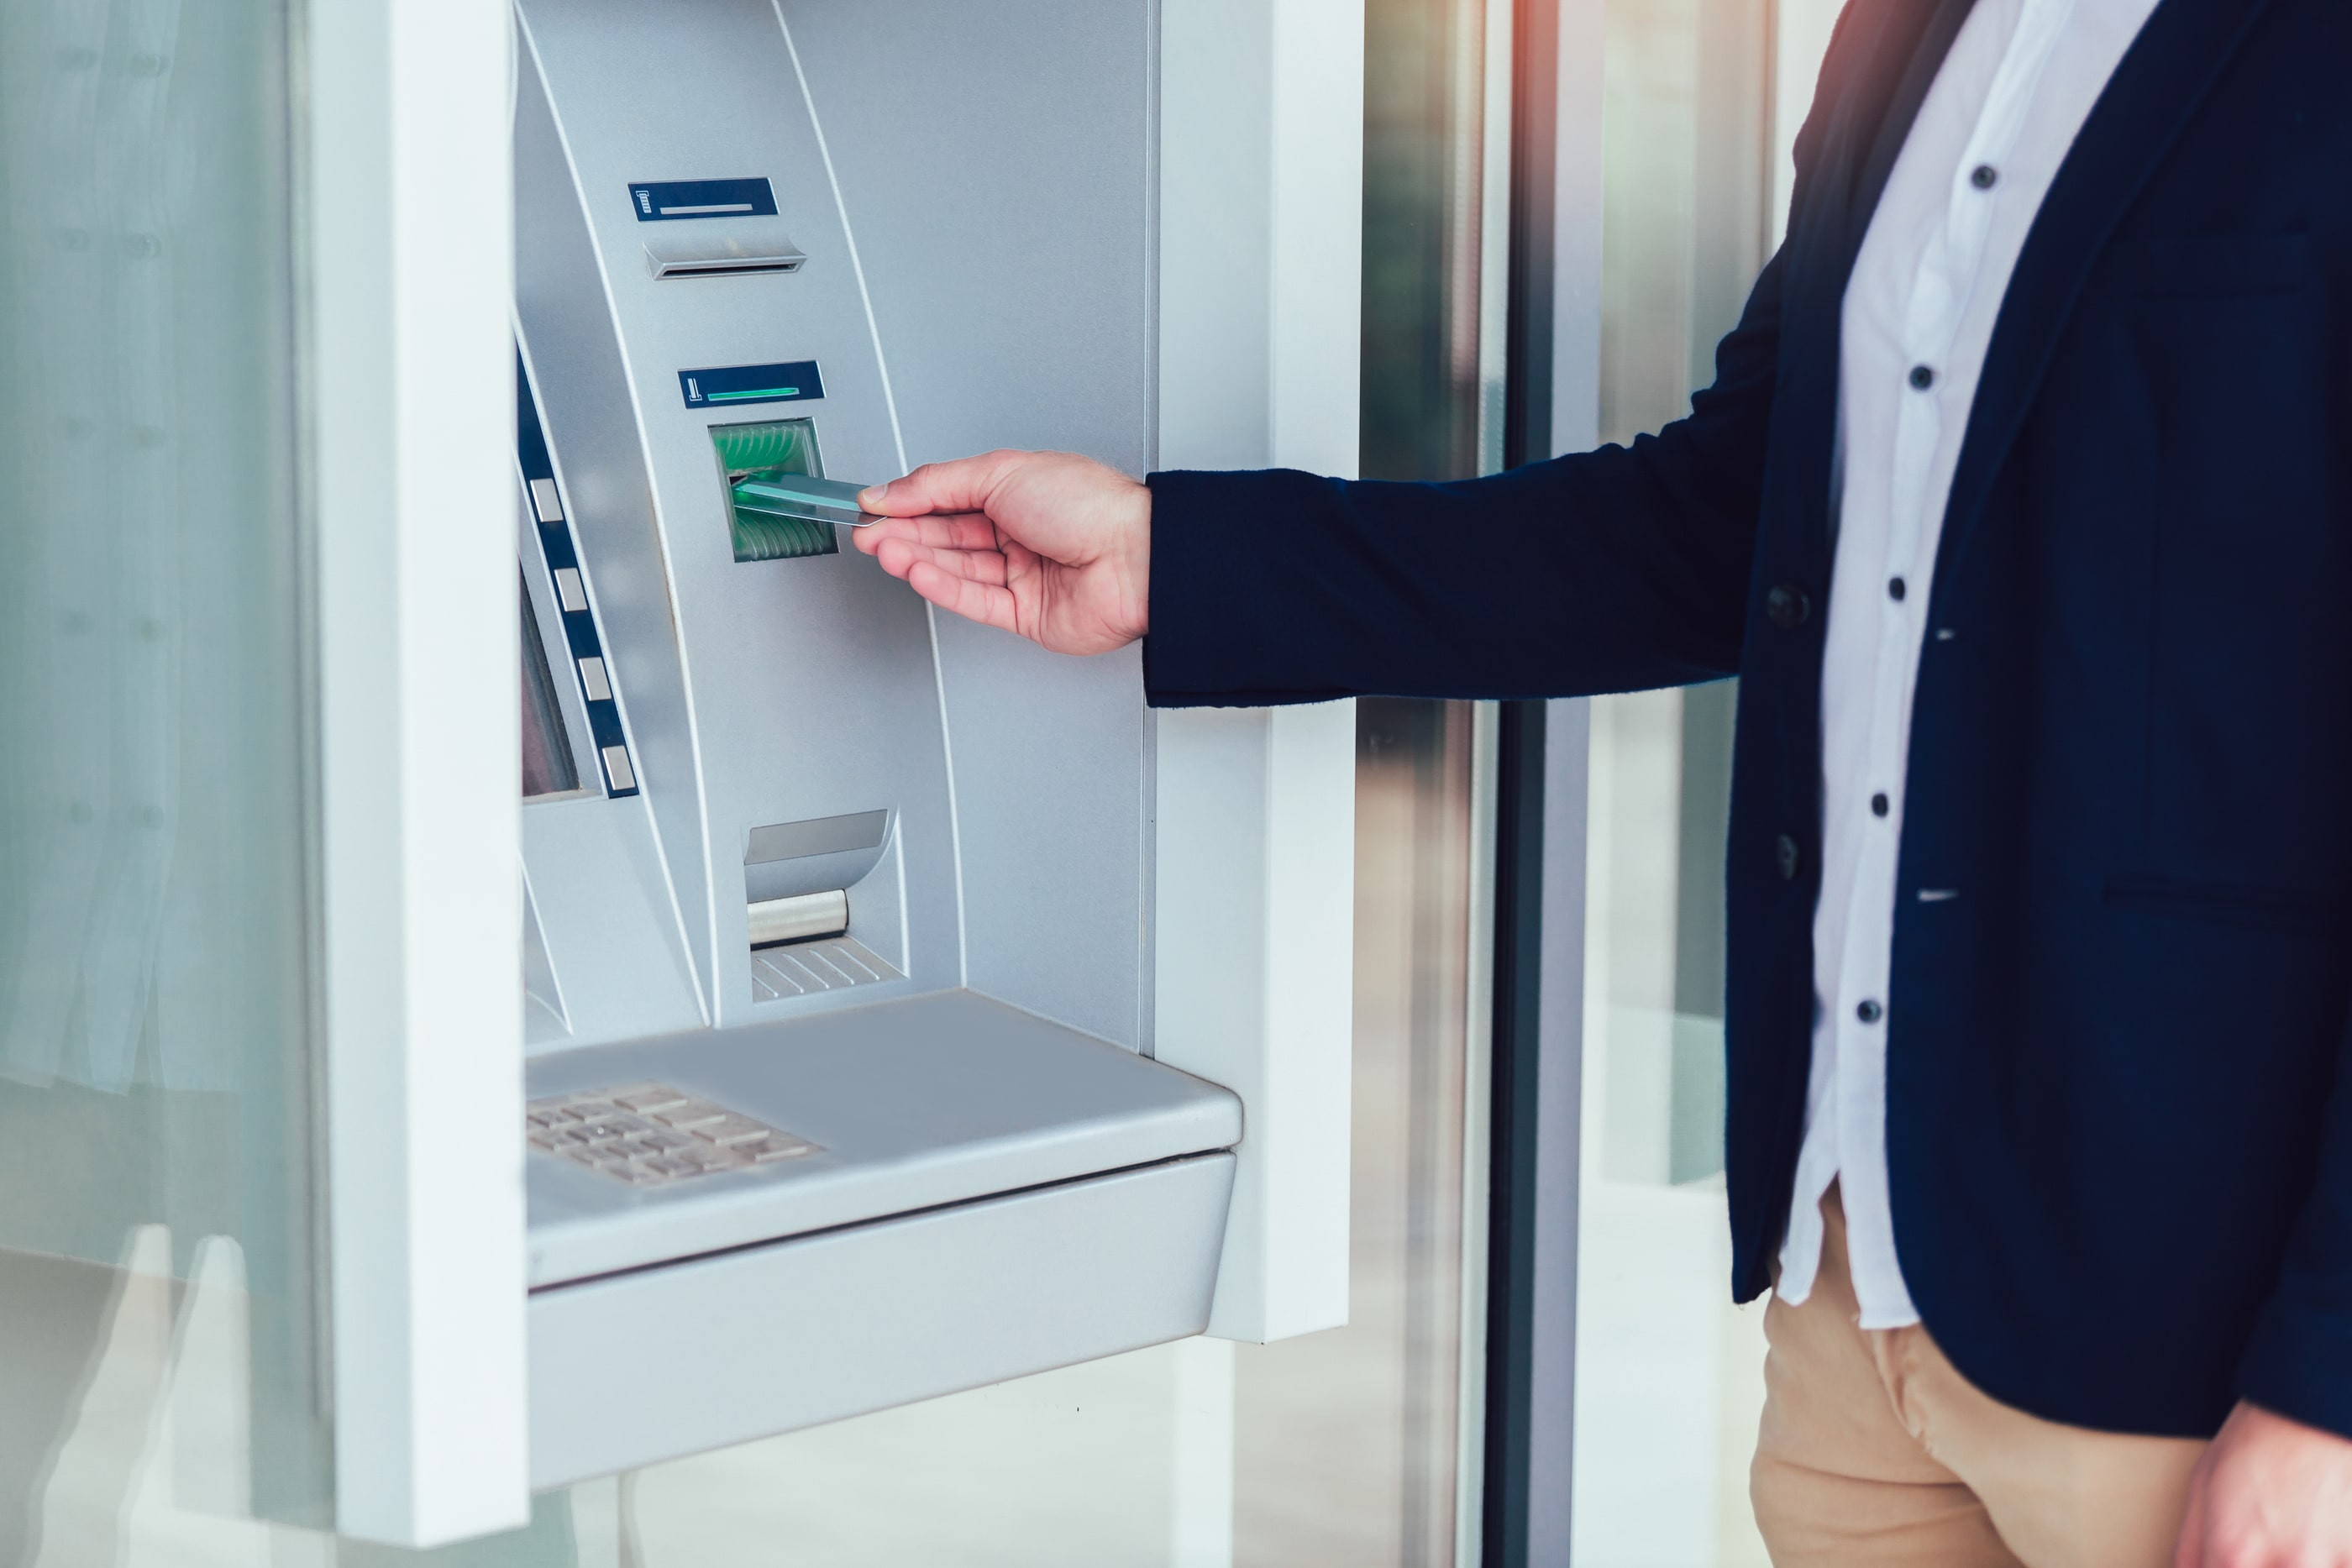 A man inserting his GLCU debit card into a CO-OP atm